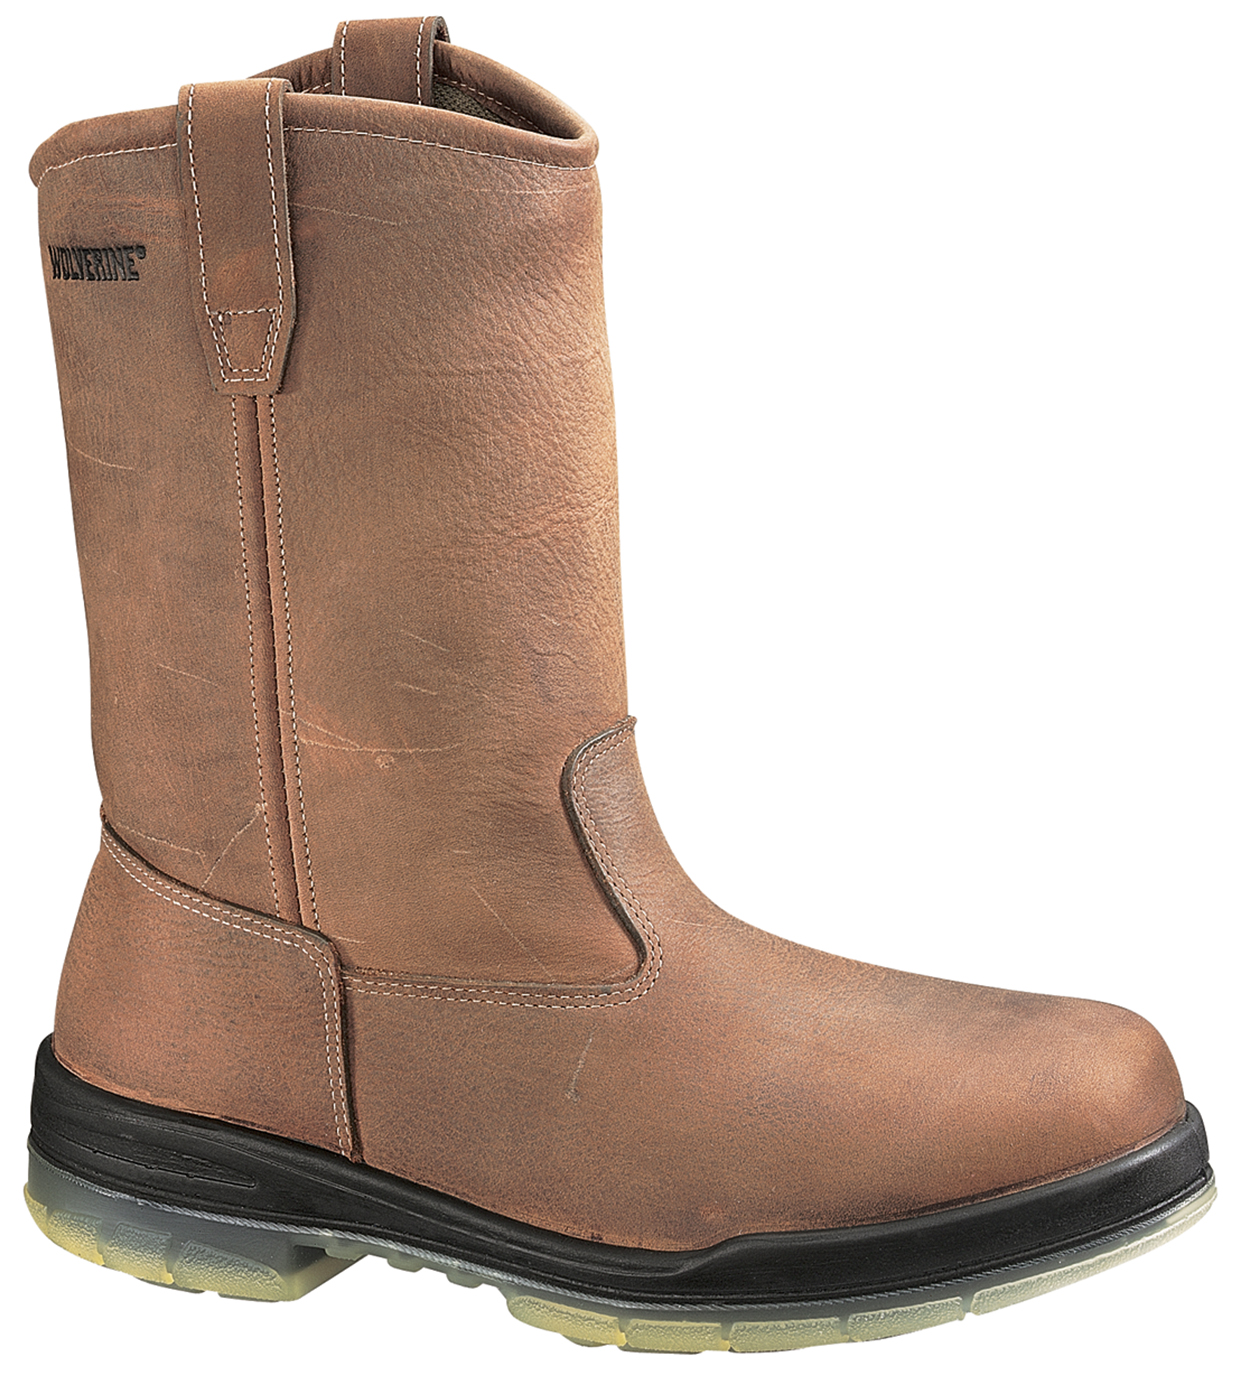 Insulated Waterproof Pull-On Work Boots